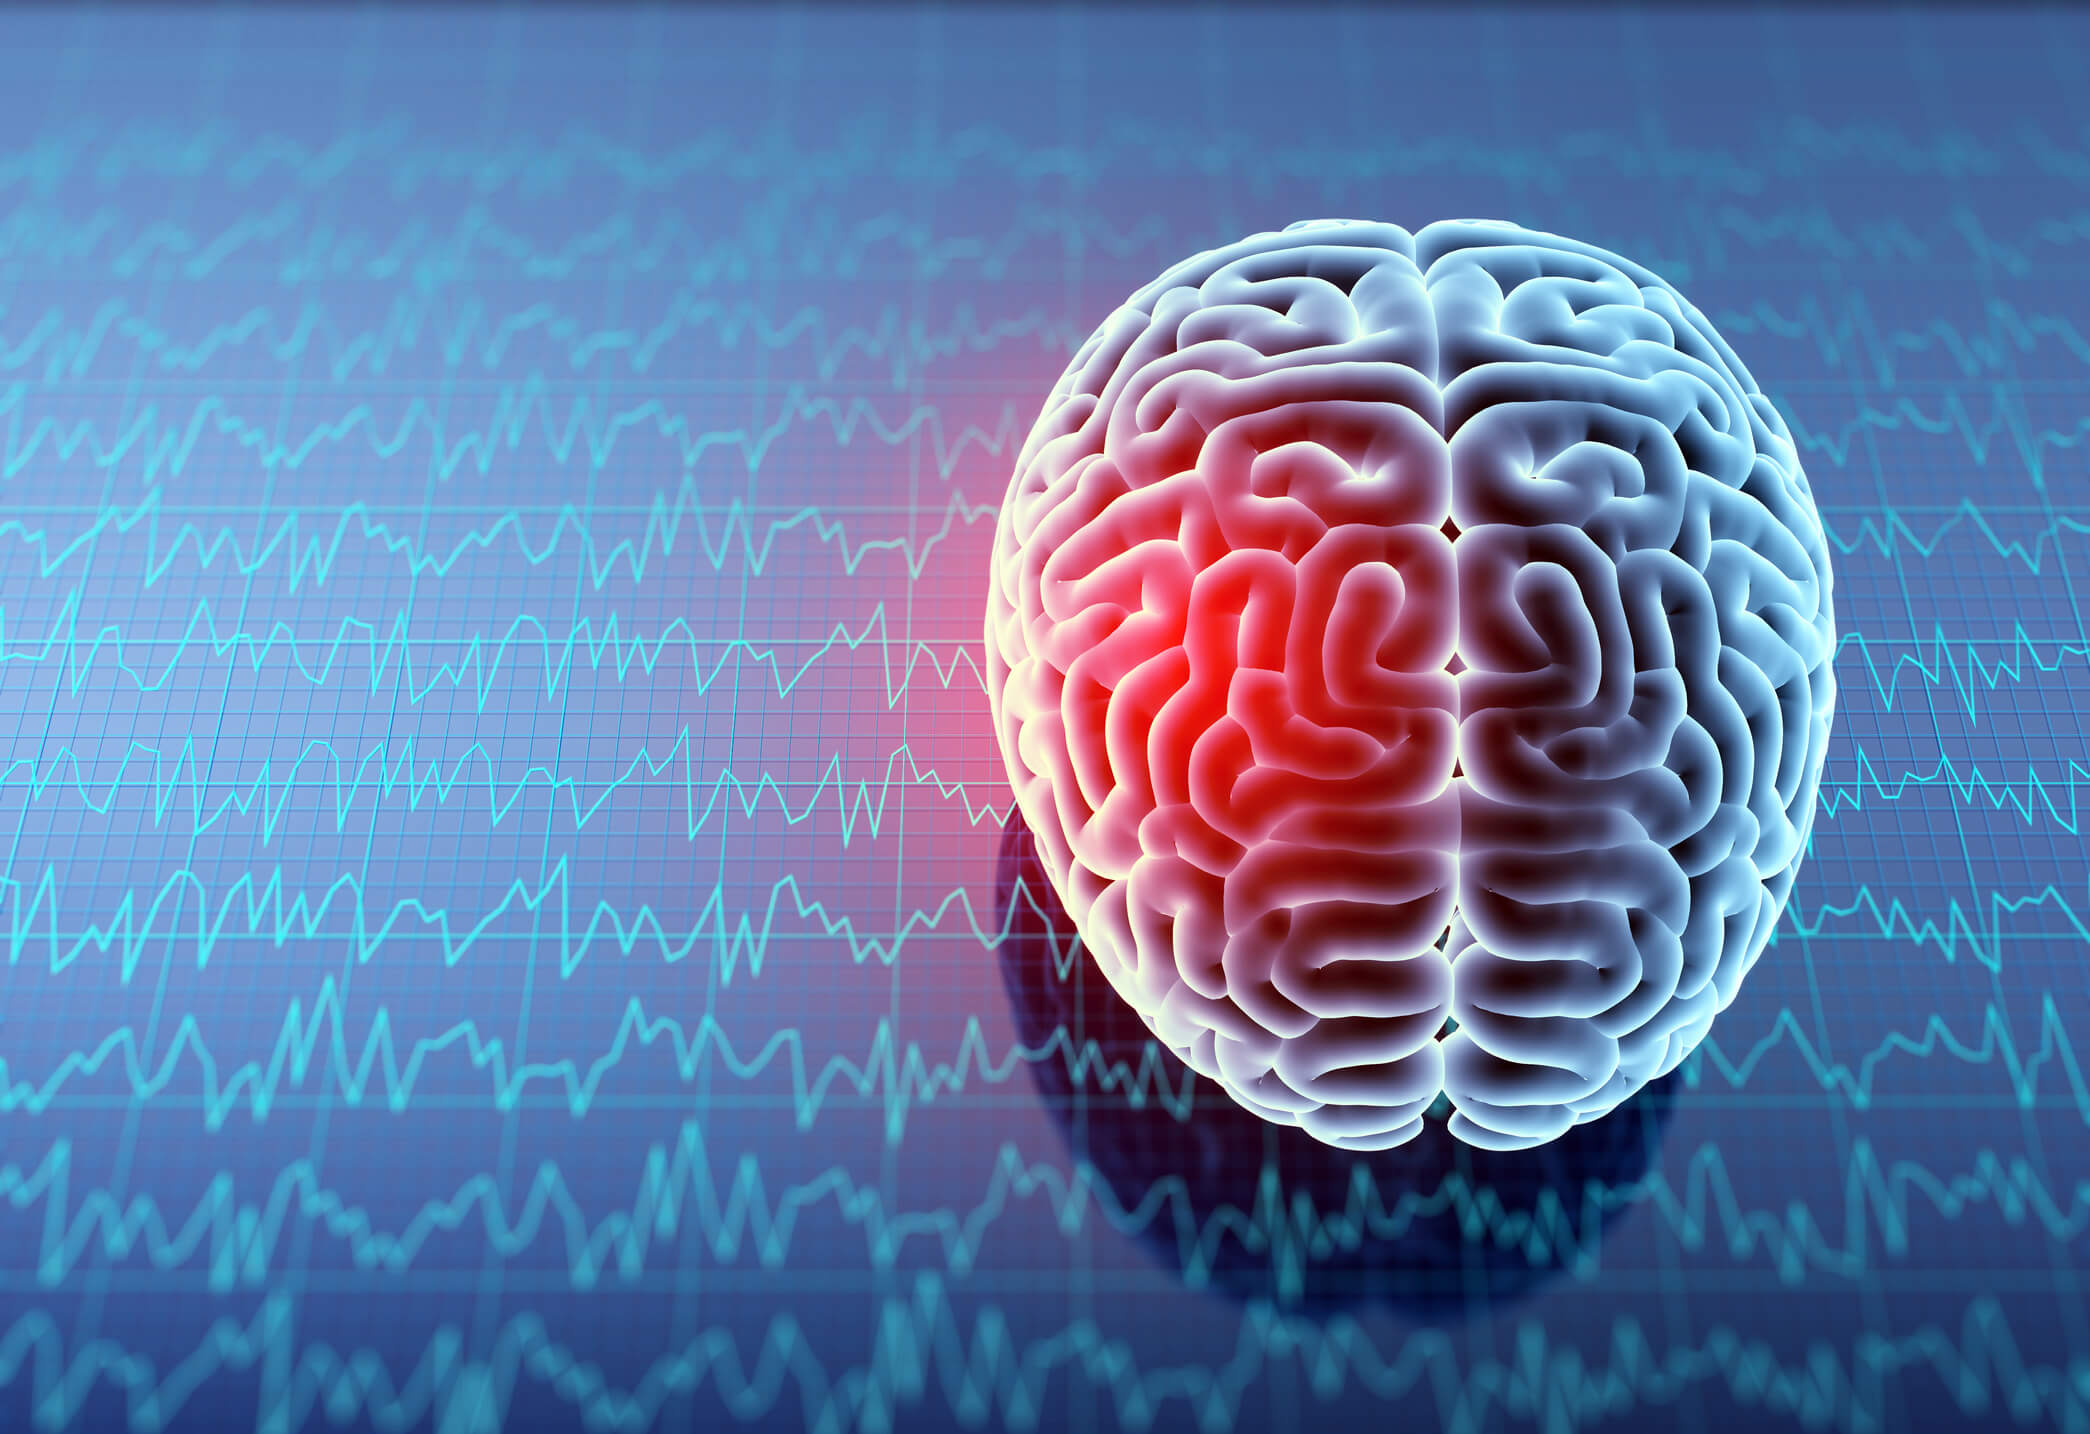 Brain injuries in teens can have long-lasting cognitive impacts